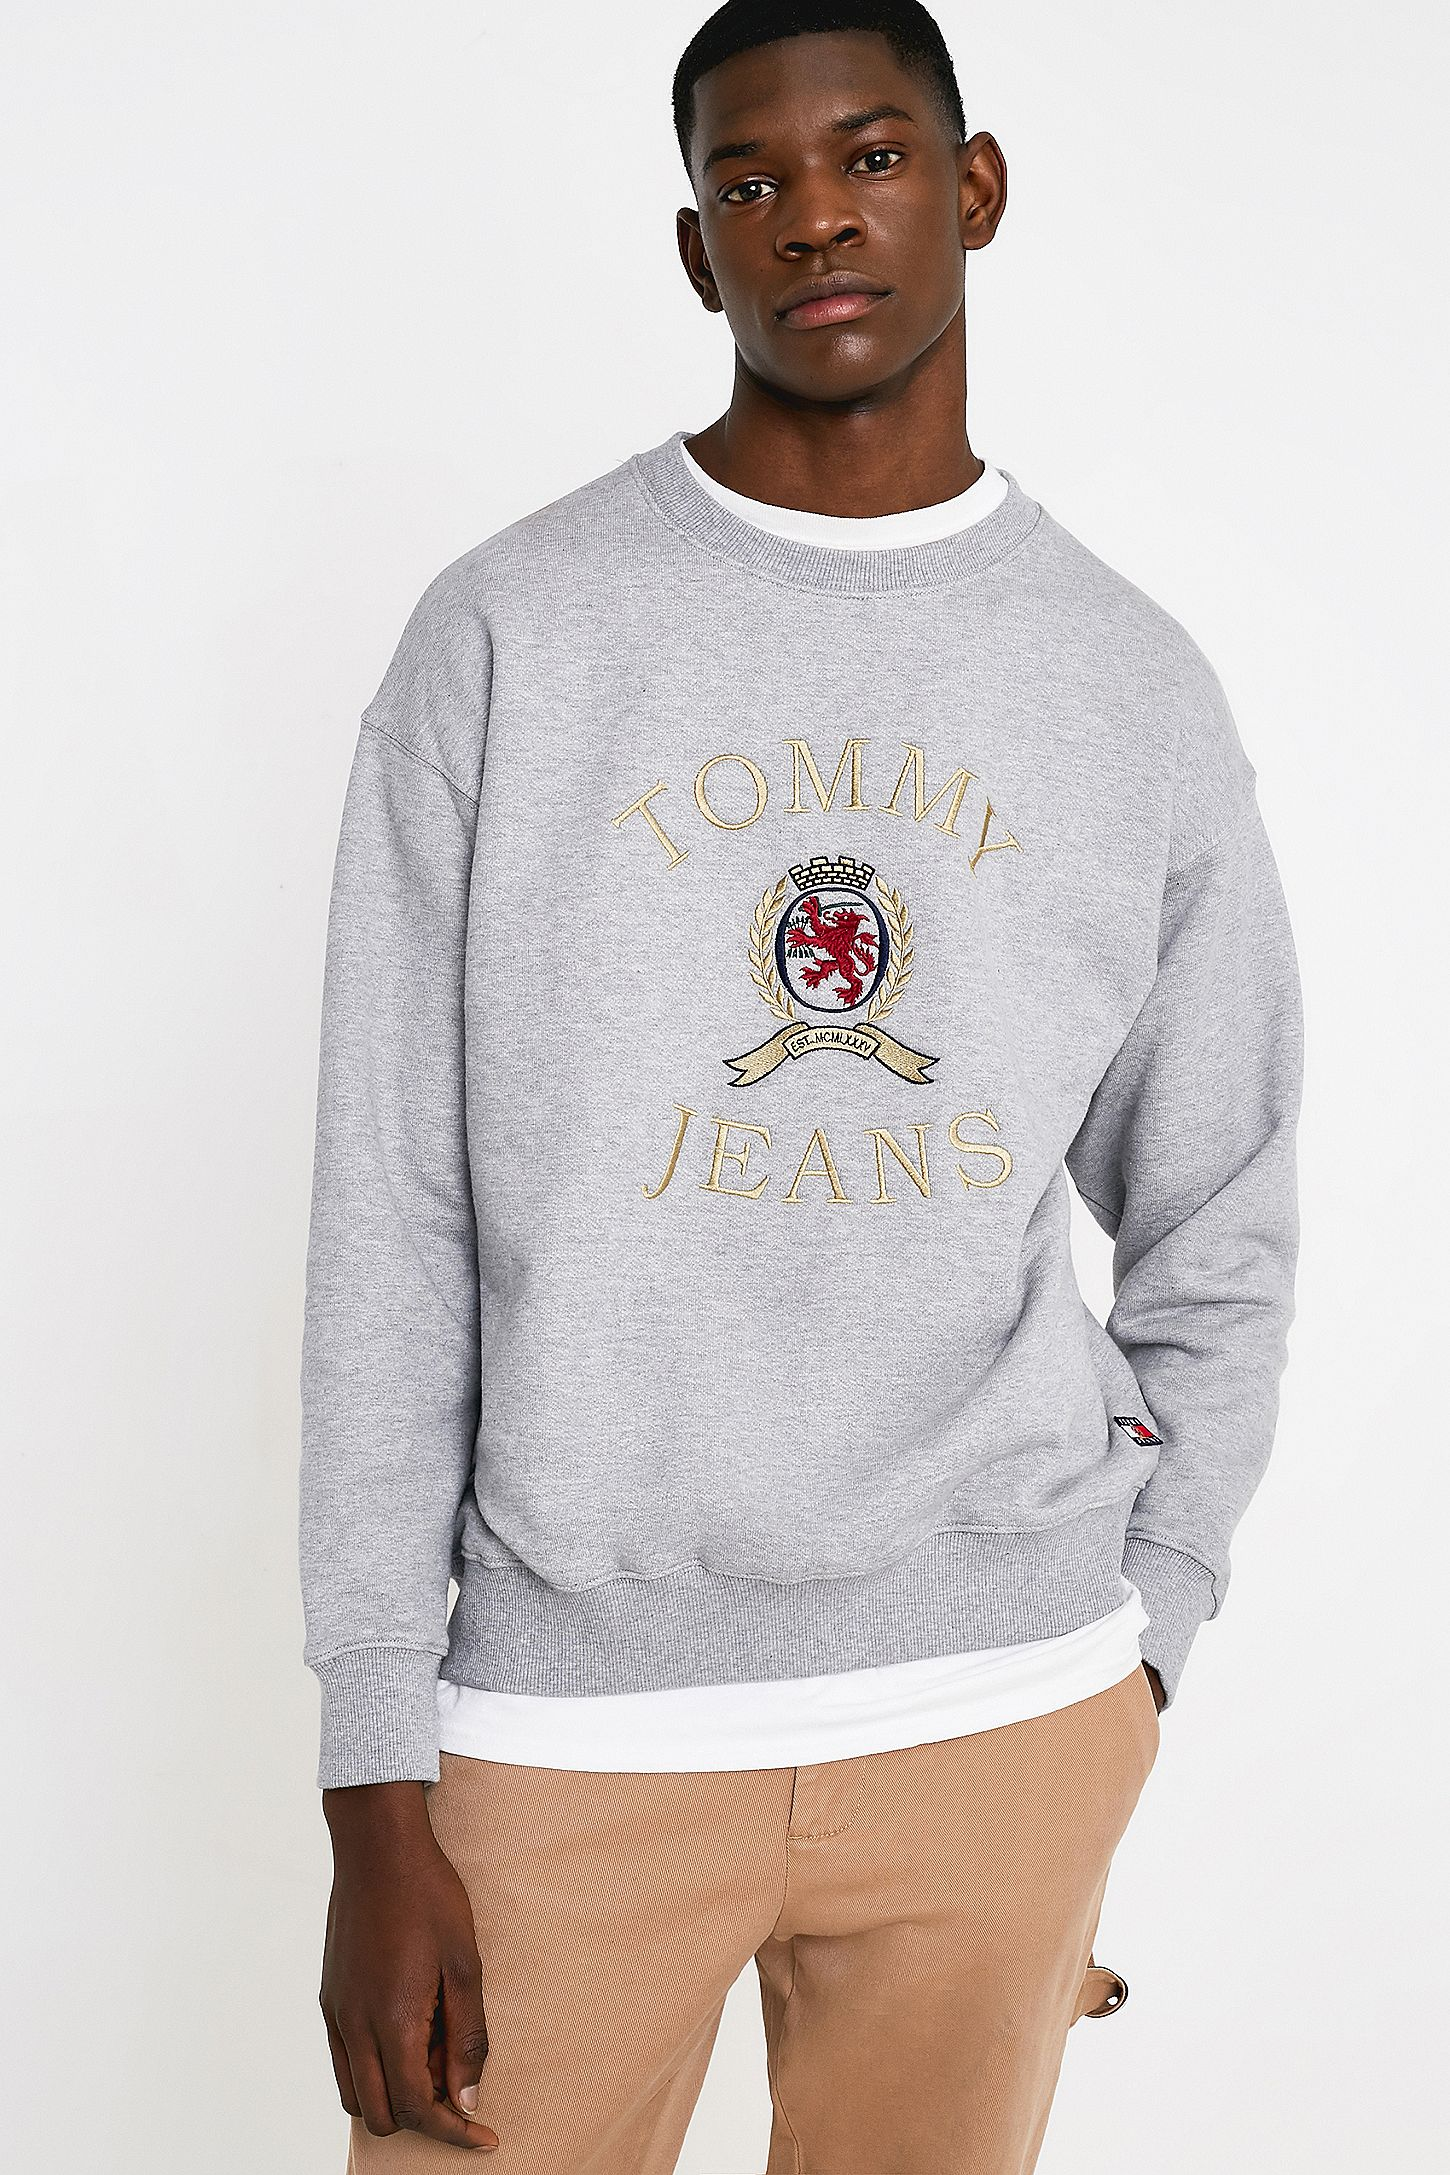 d3b5d7d8 Tommy Jeans Crest Collection Flag Grey Crew Neck Sweatshirt | Urban ...